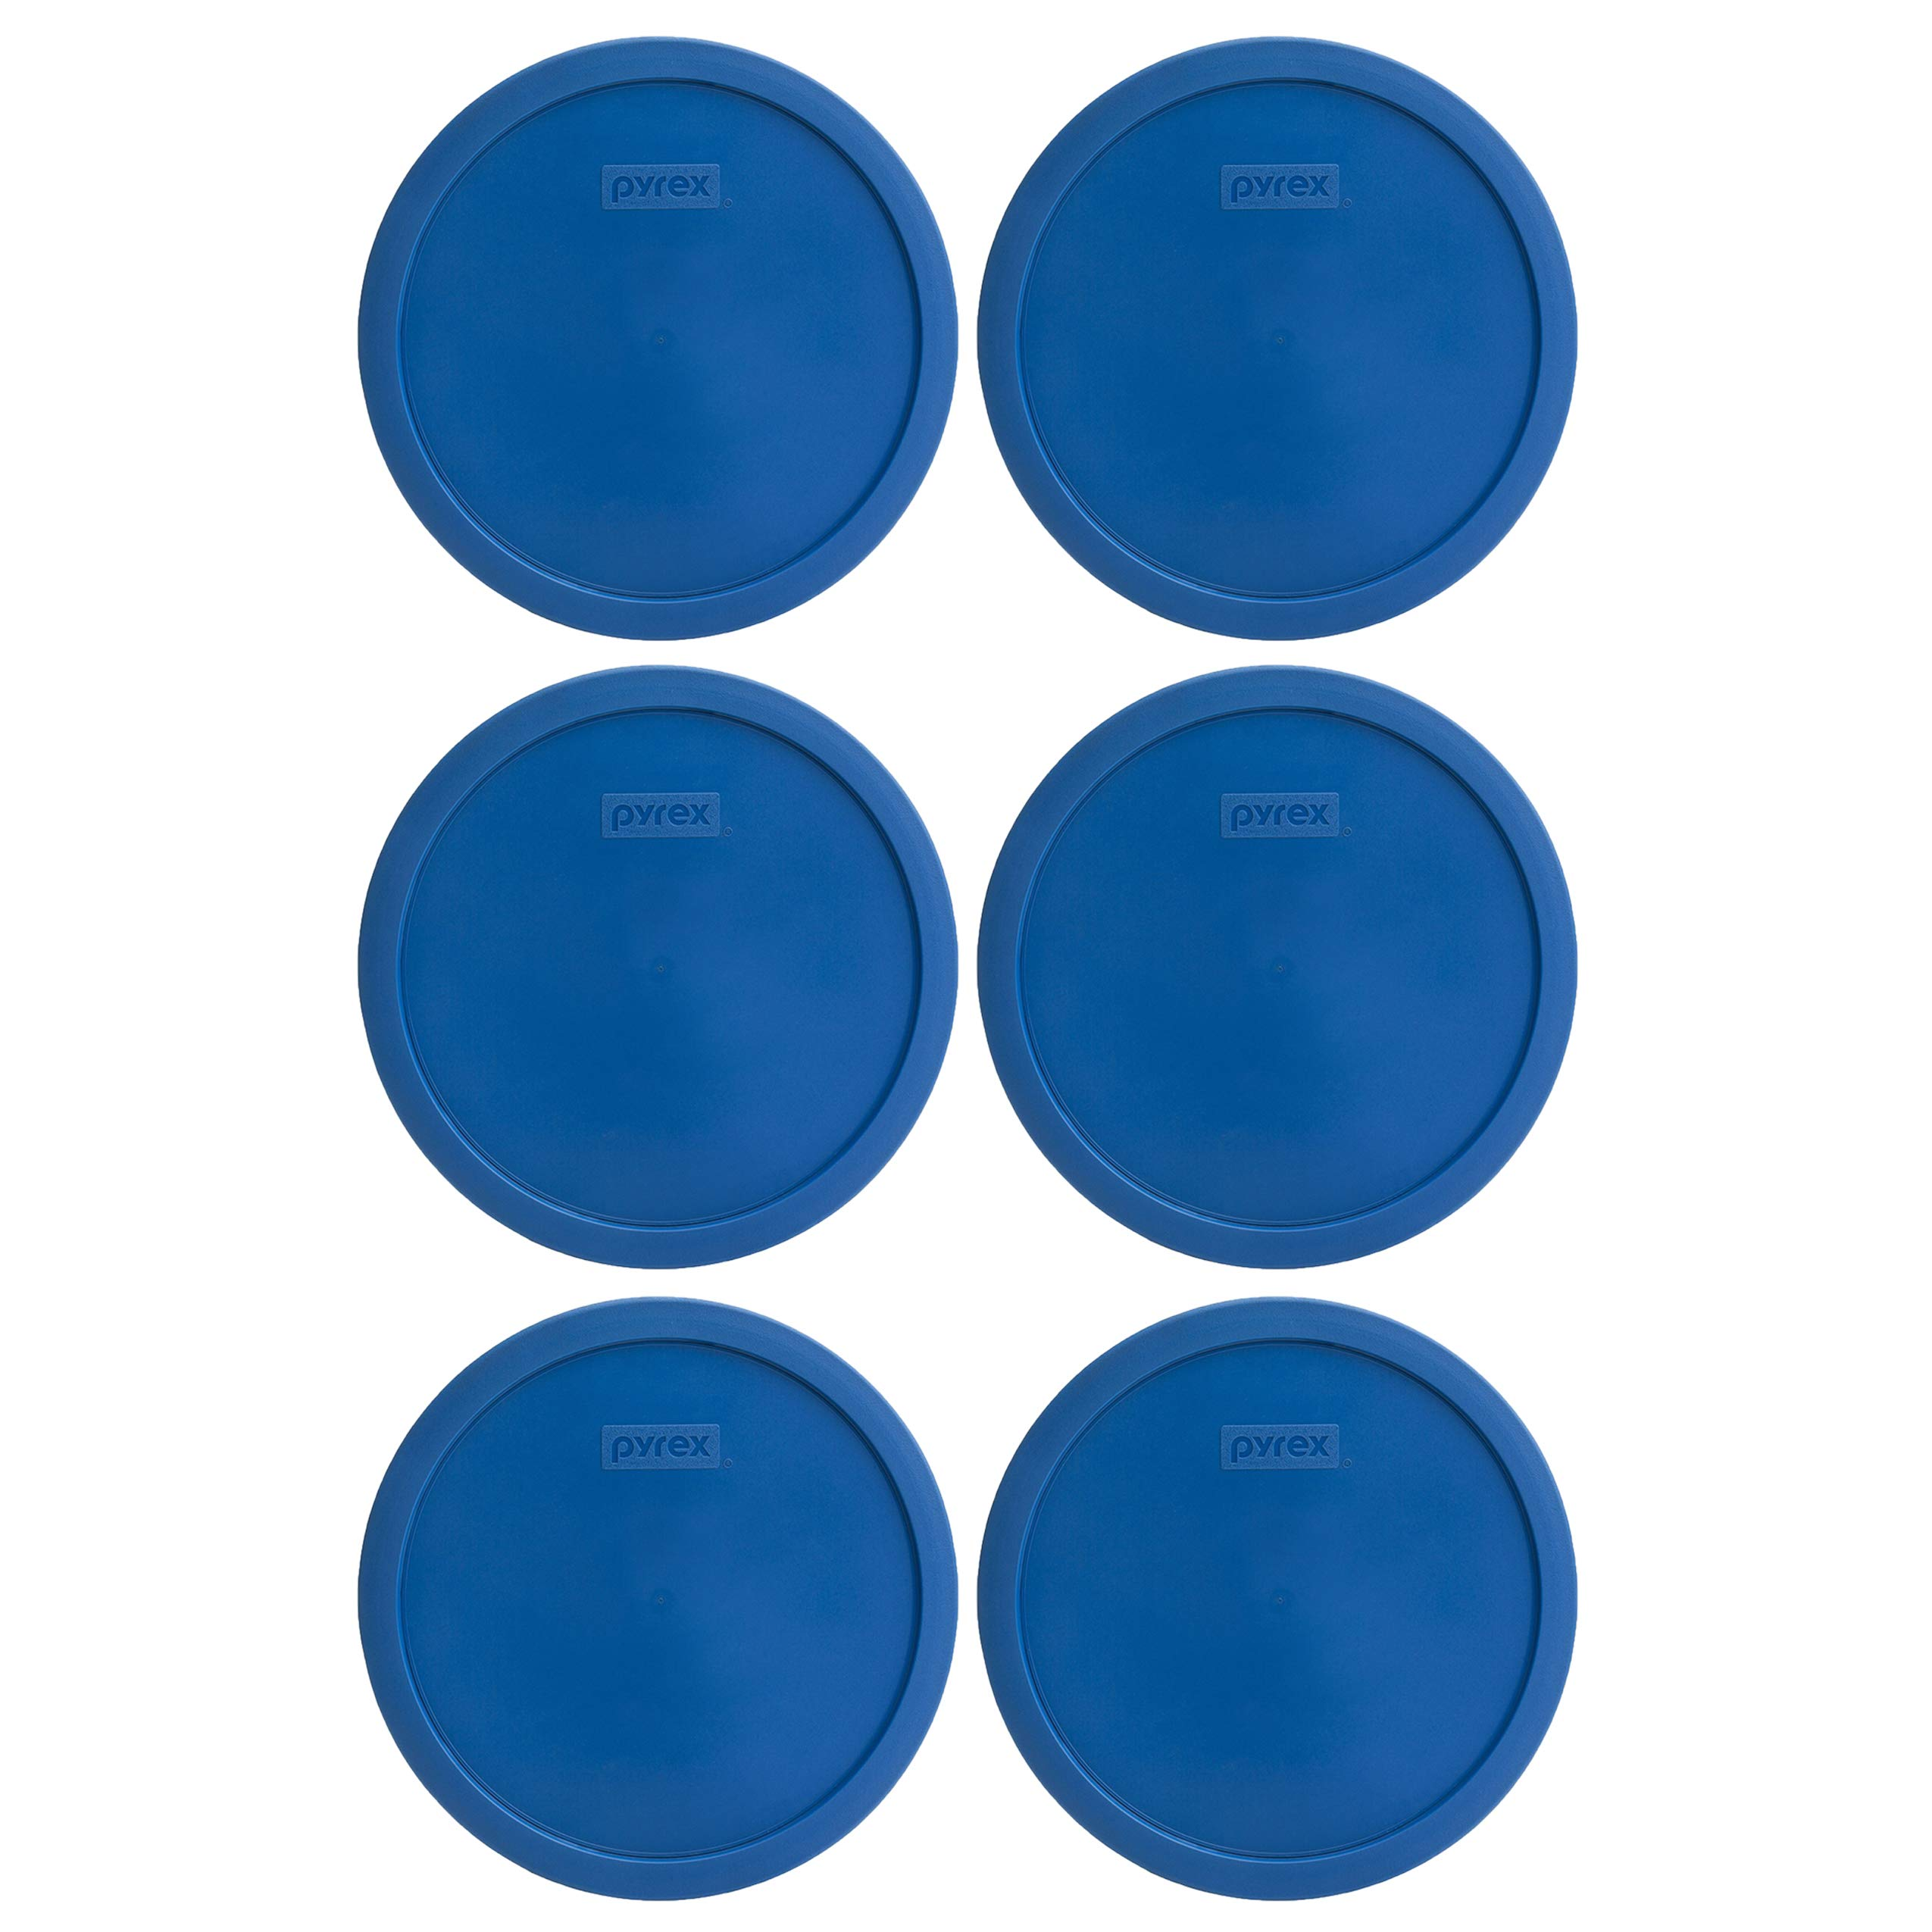 Pyrex 7401-PC 3 Cup Lake Blue Round Plastic Lid (6, Lake Blue)